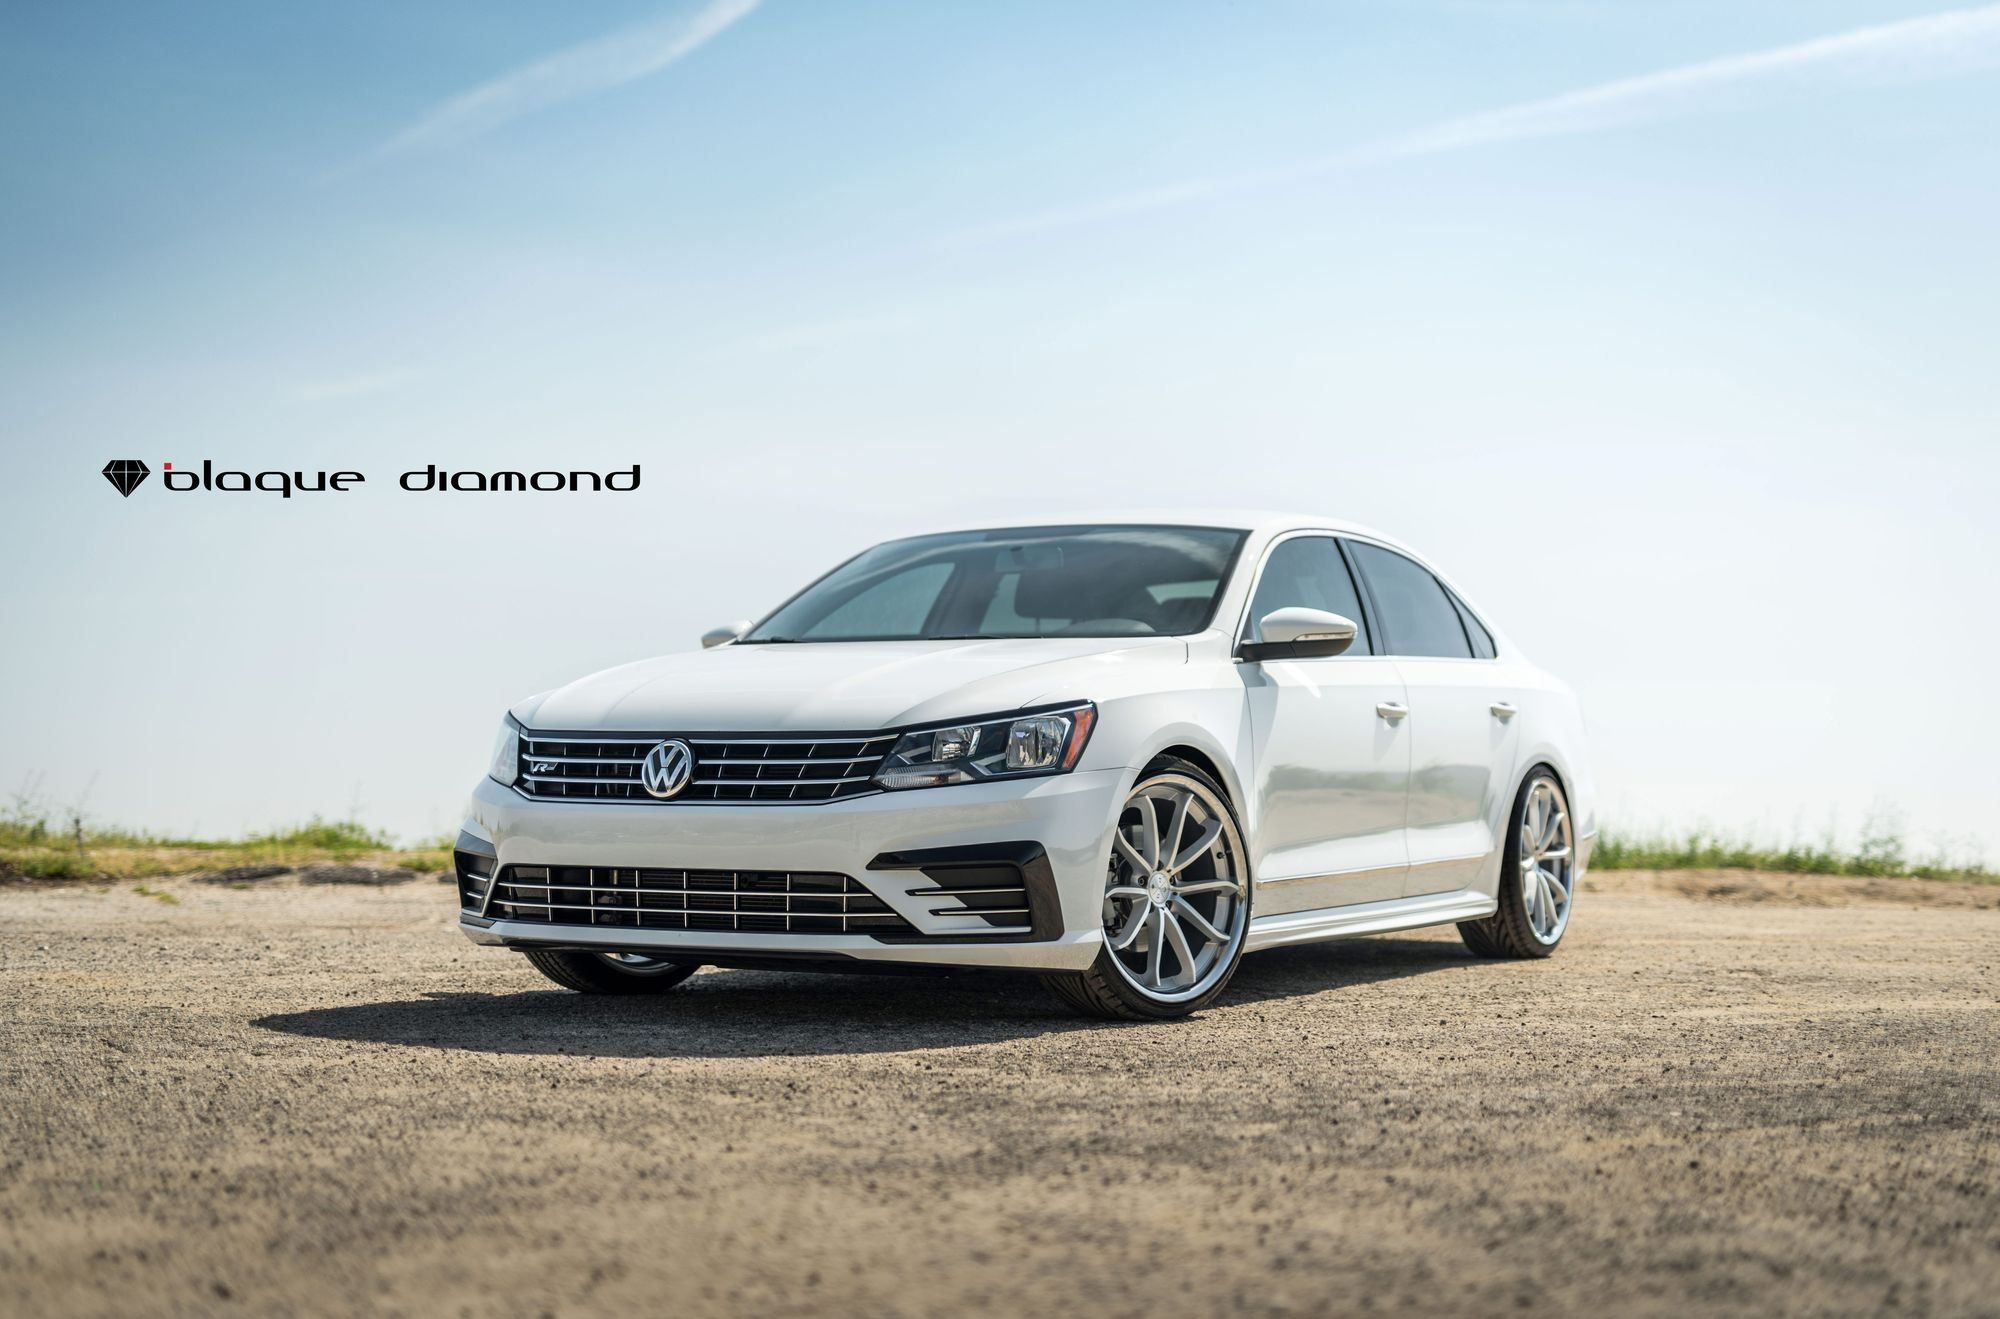 Vw Aftermarket Parts >> Stylish Transformation Of White Vw Passat With Aftermarket